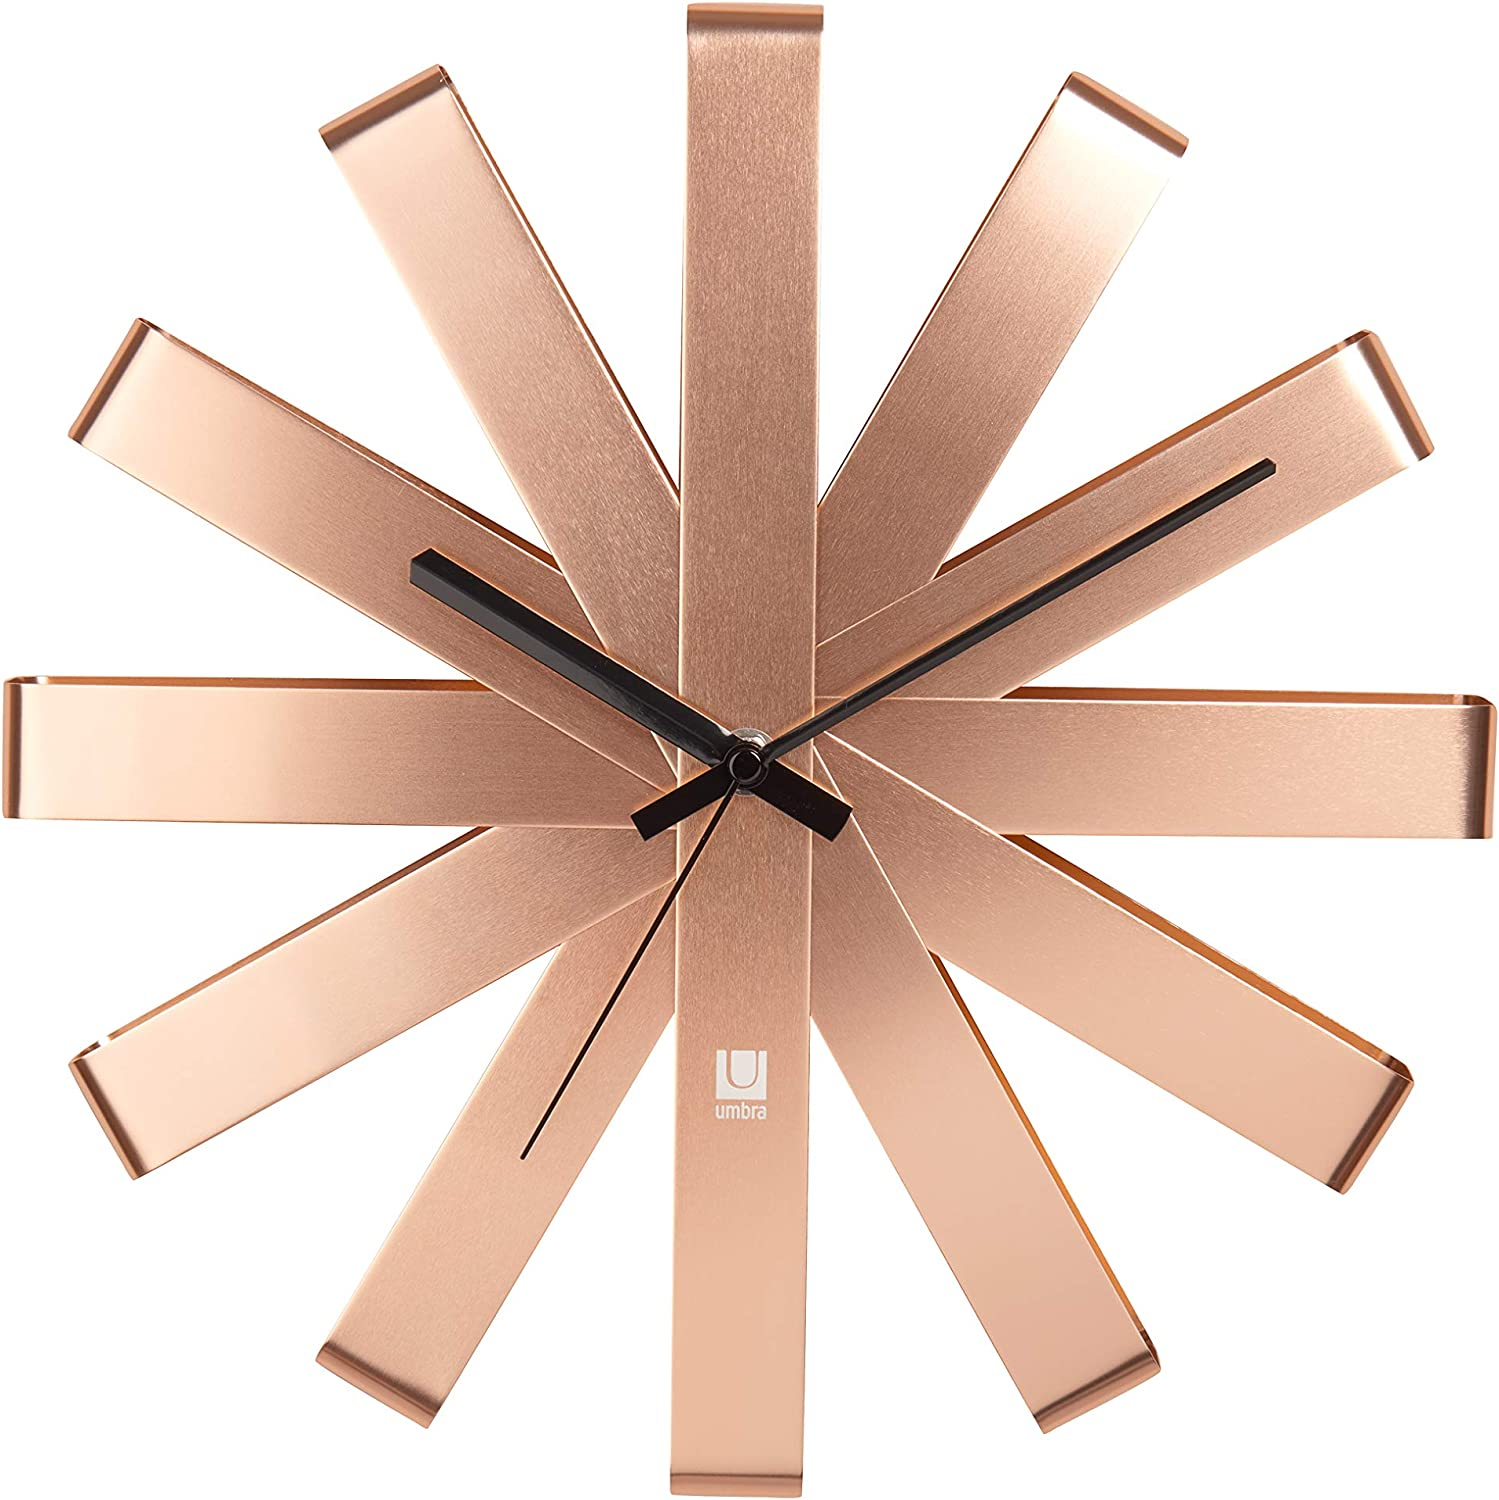 Umbra Ribbon Modern 12-inch Wall Clock, Battery Operated Quartz Movement, Silent Non Ticking Wall Clock, Copper